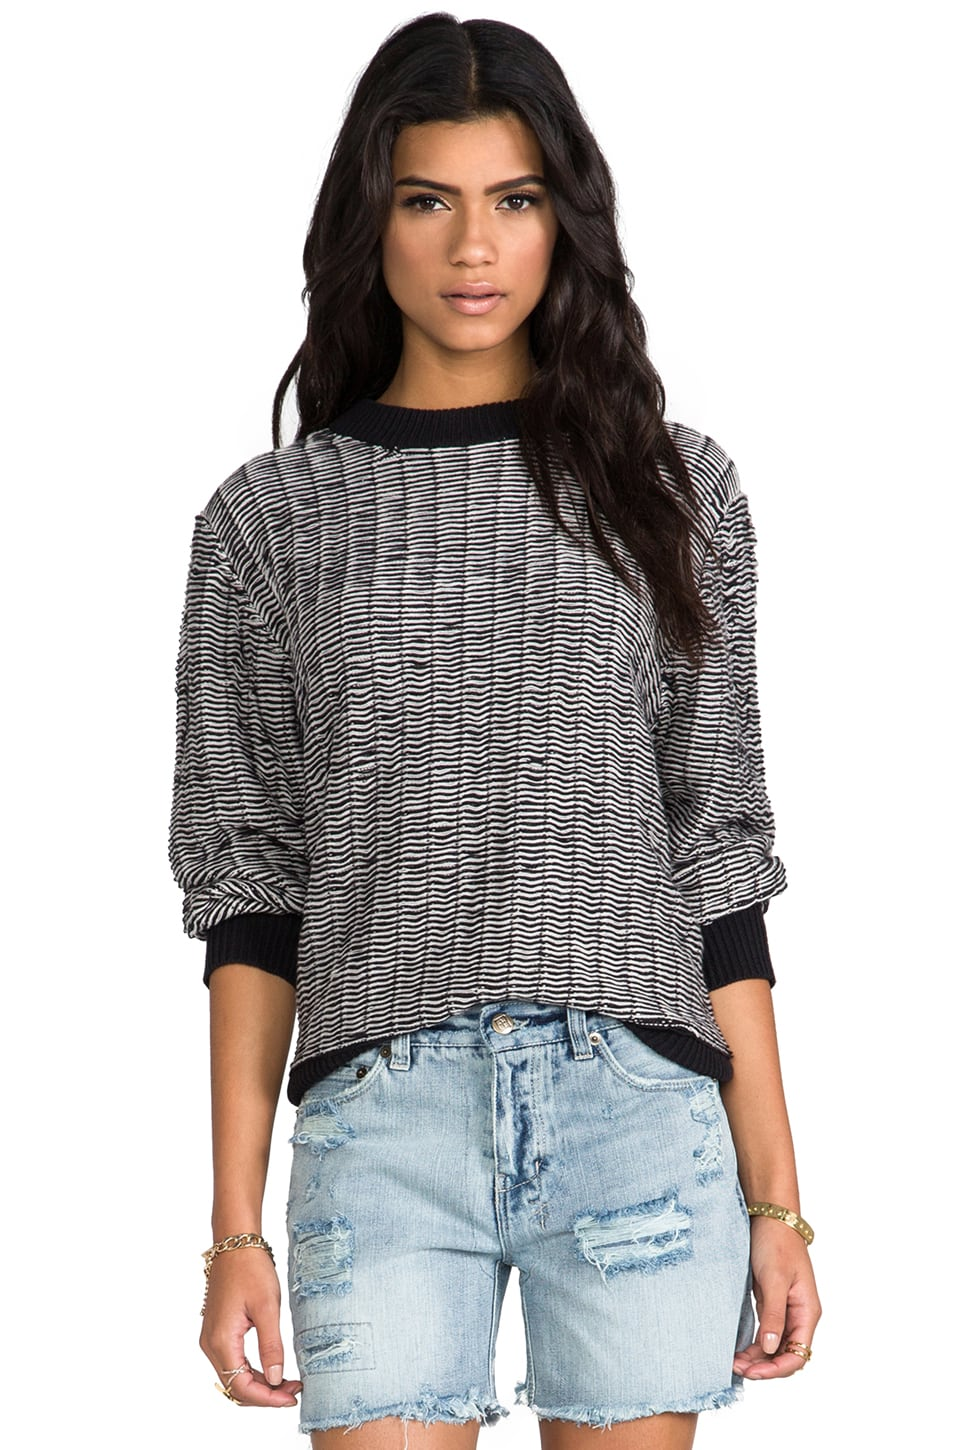 Cheap Monday Big Knit Sweater in Black/ White